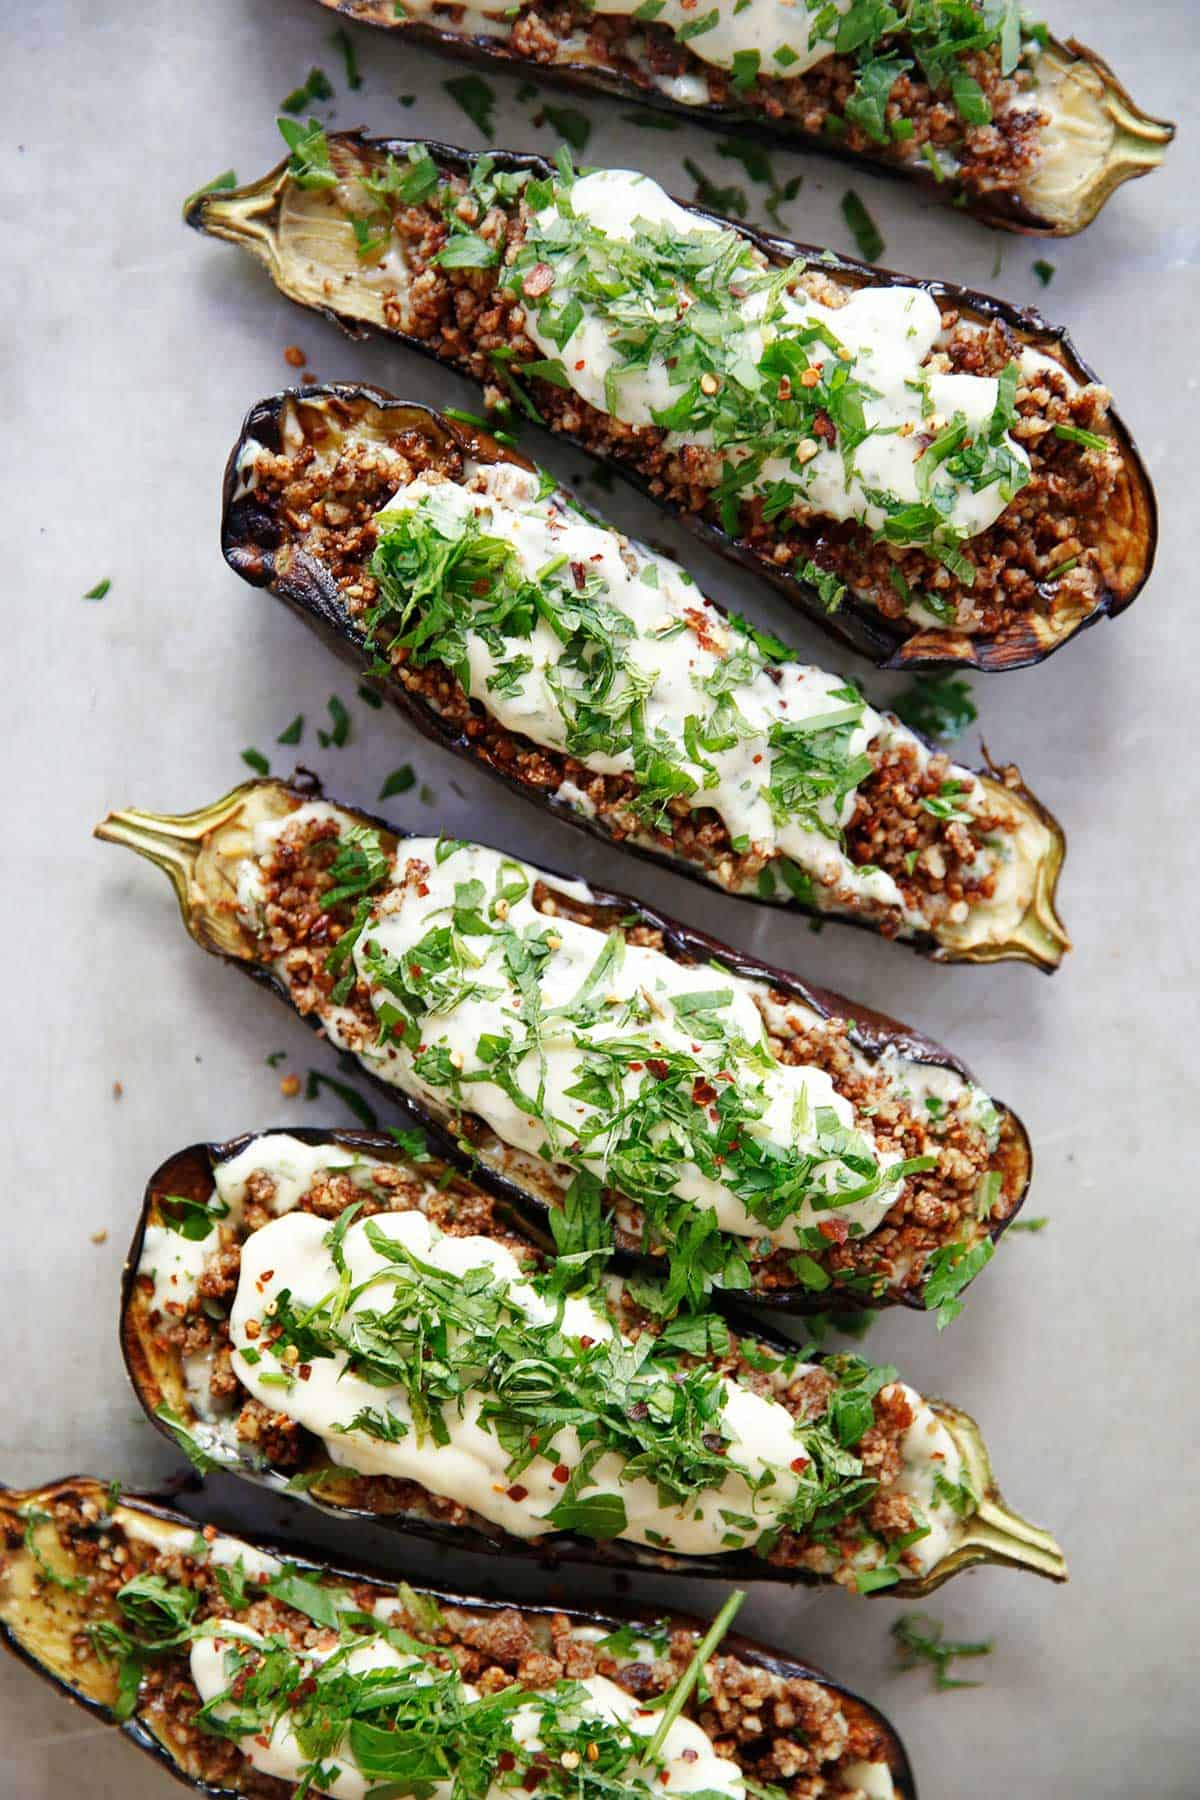 Loaded Grilled Eggplant Creamy Herb Sauce {Vegetarian, dairy-free, BBQ, Summer, gluten-free, paleo-friendly} | Lexi's Clean Kitchen